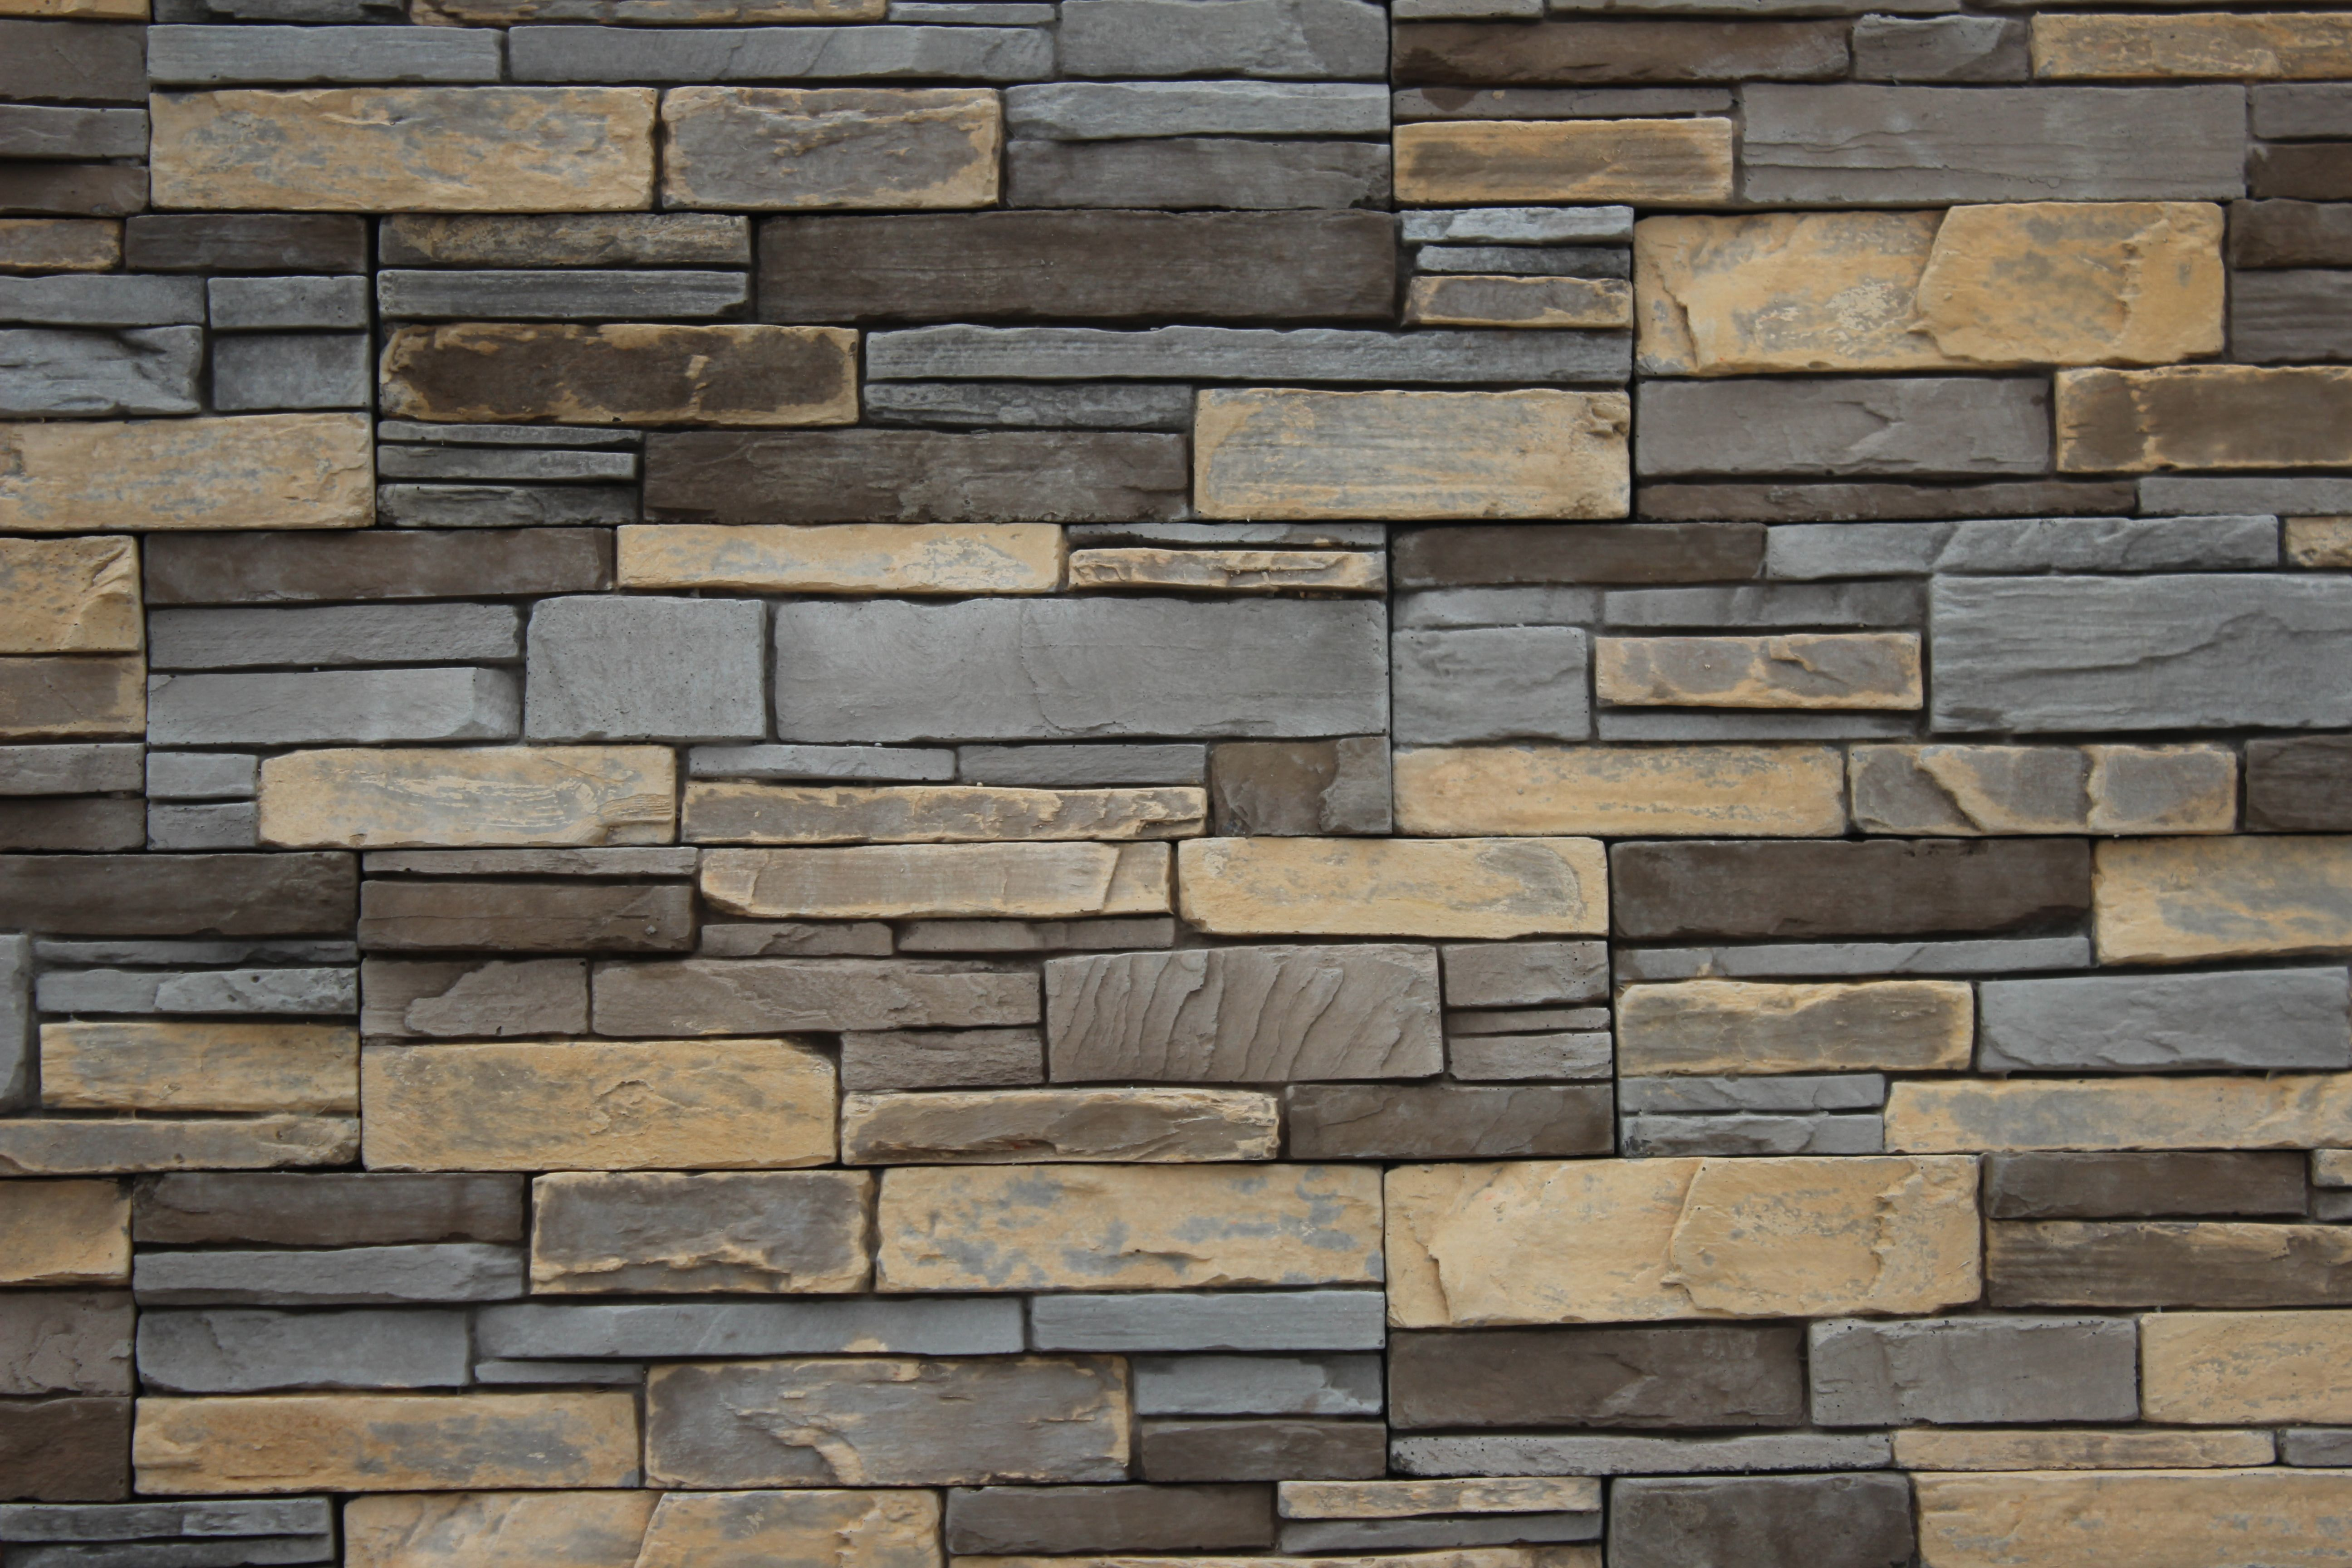 Adorn Mortarless Stone Veneer Siding Is An Ideal Choice For Any